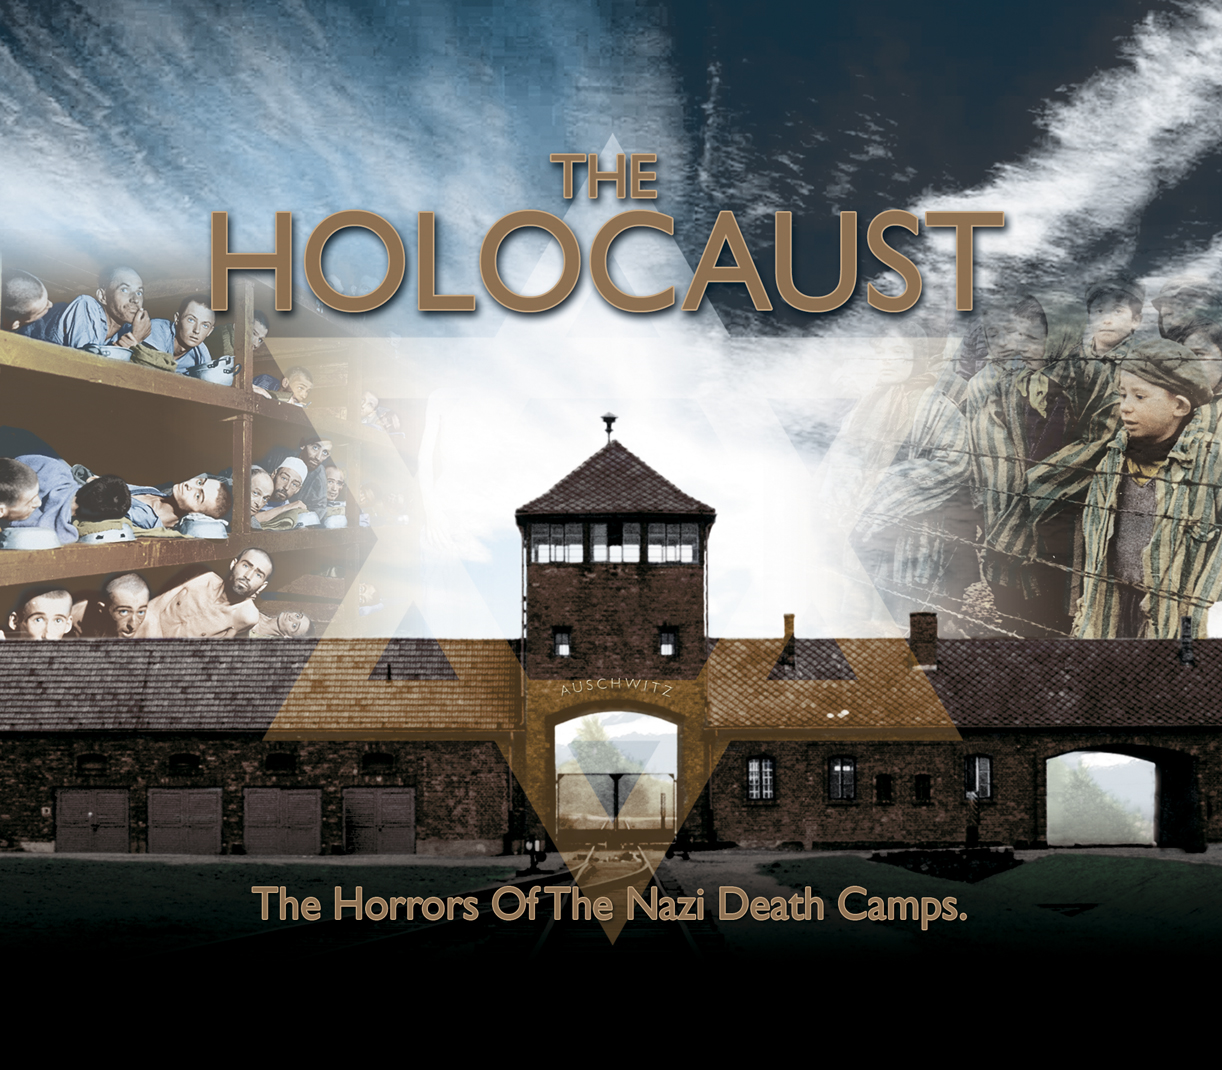 The Holocaust: Nazi Death Camps